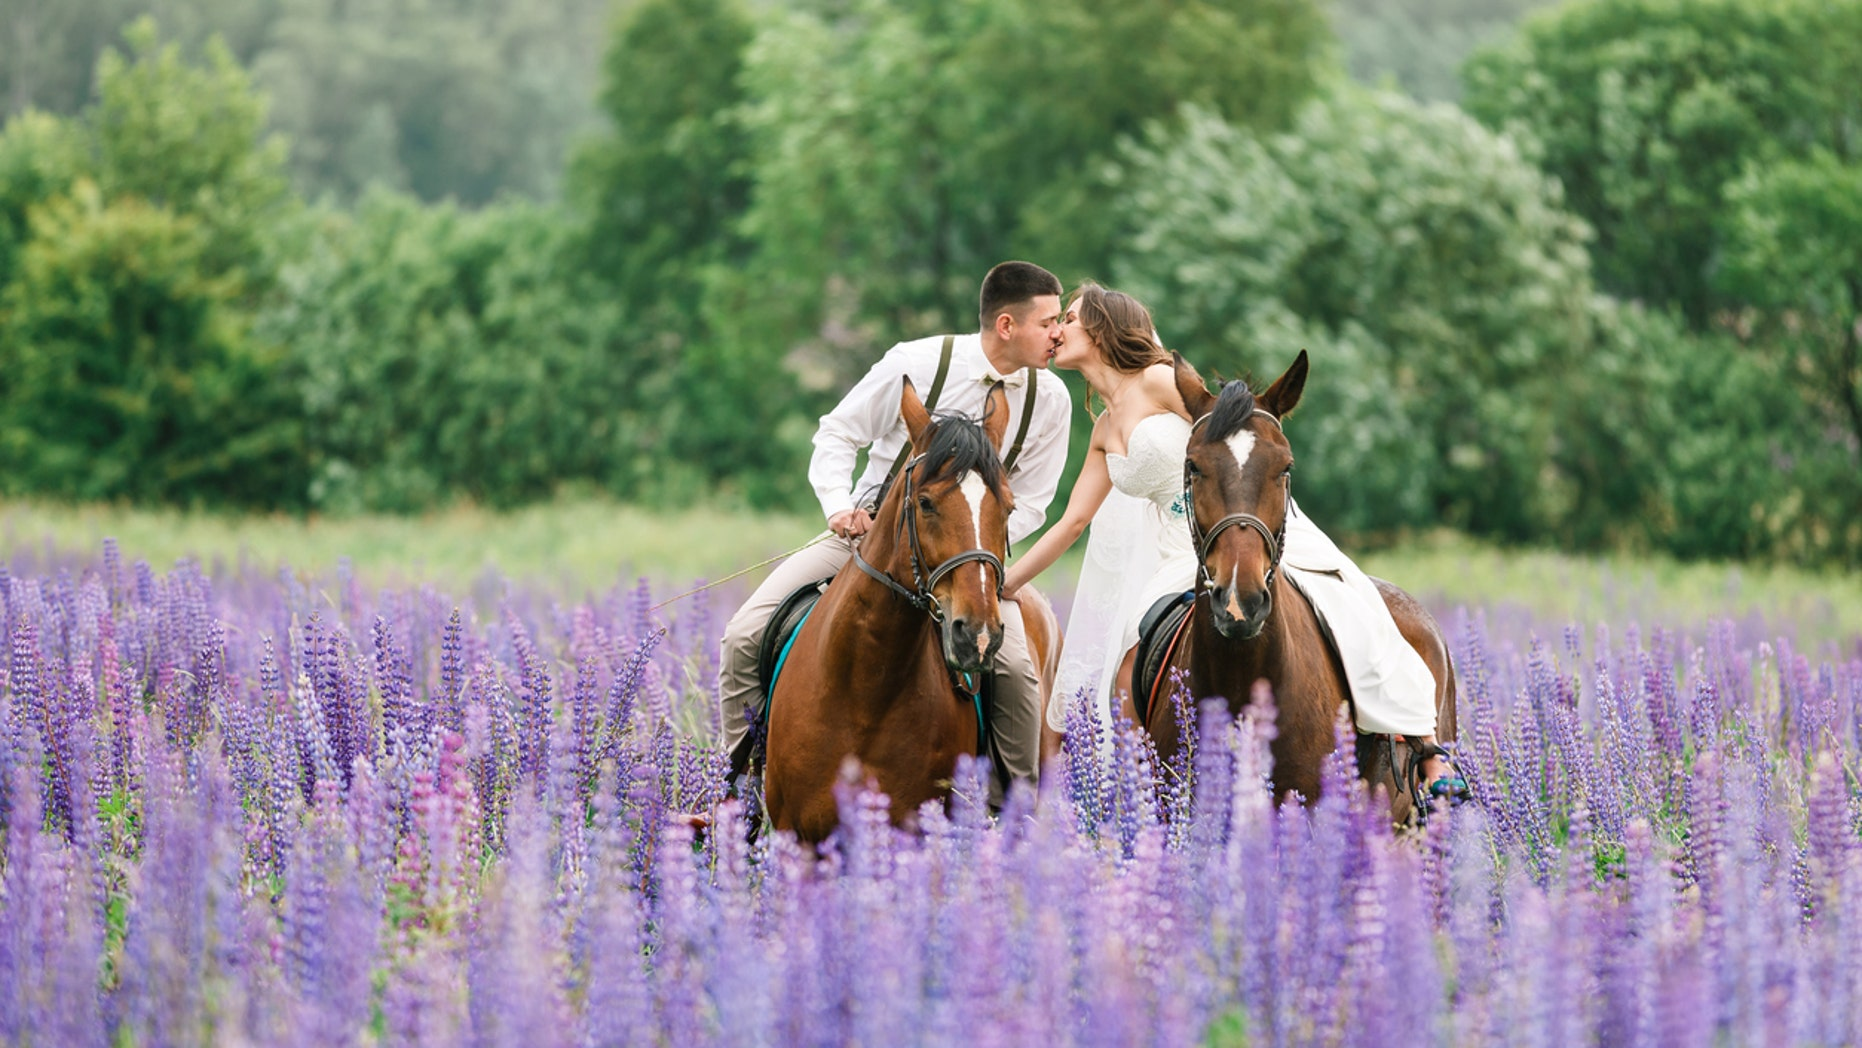 The bride's horse took over the photo shoot with an ear-to-ear grin that has won Facebook over.